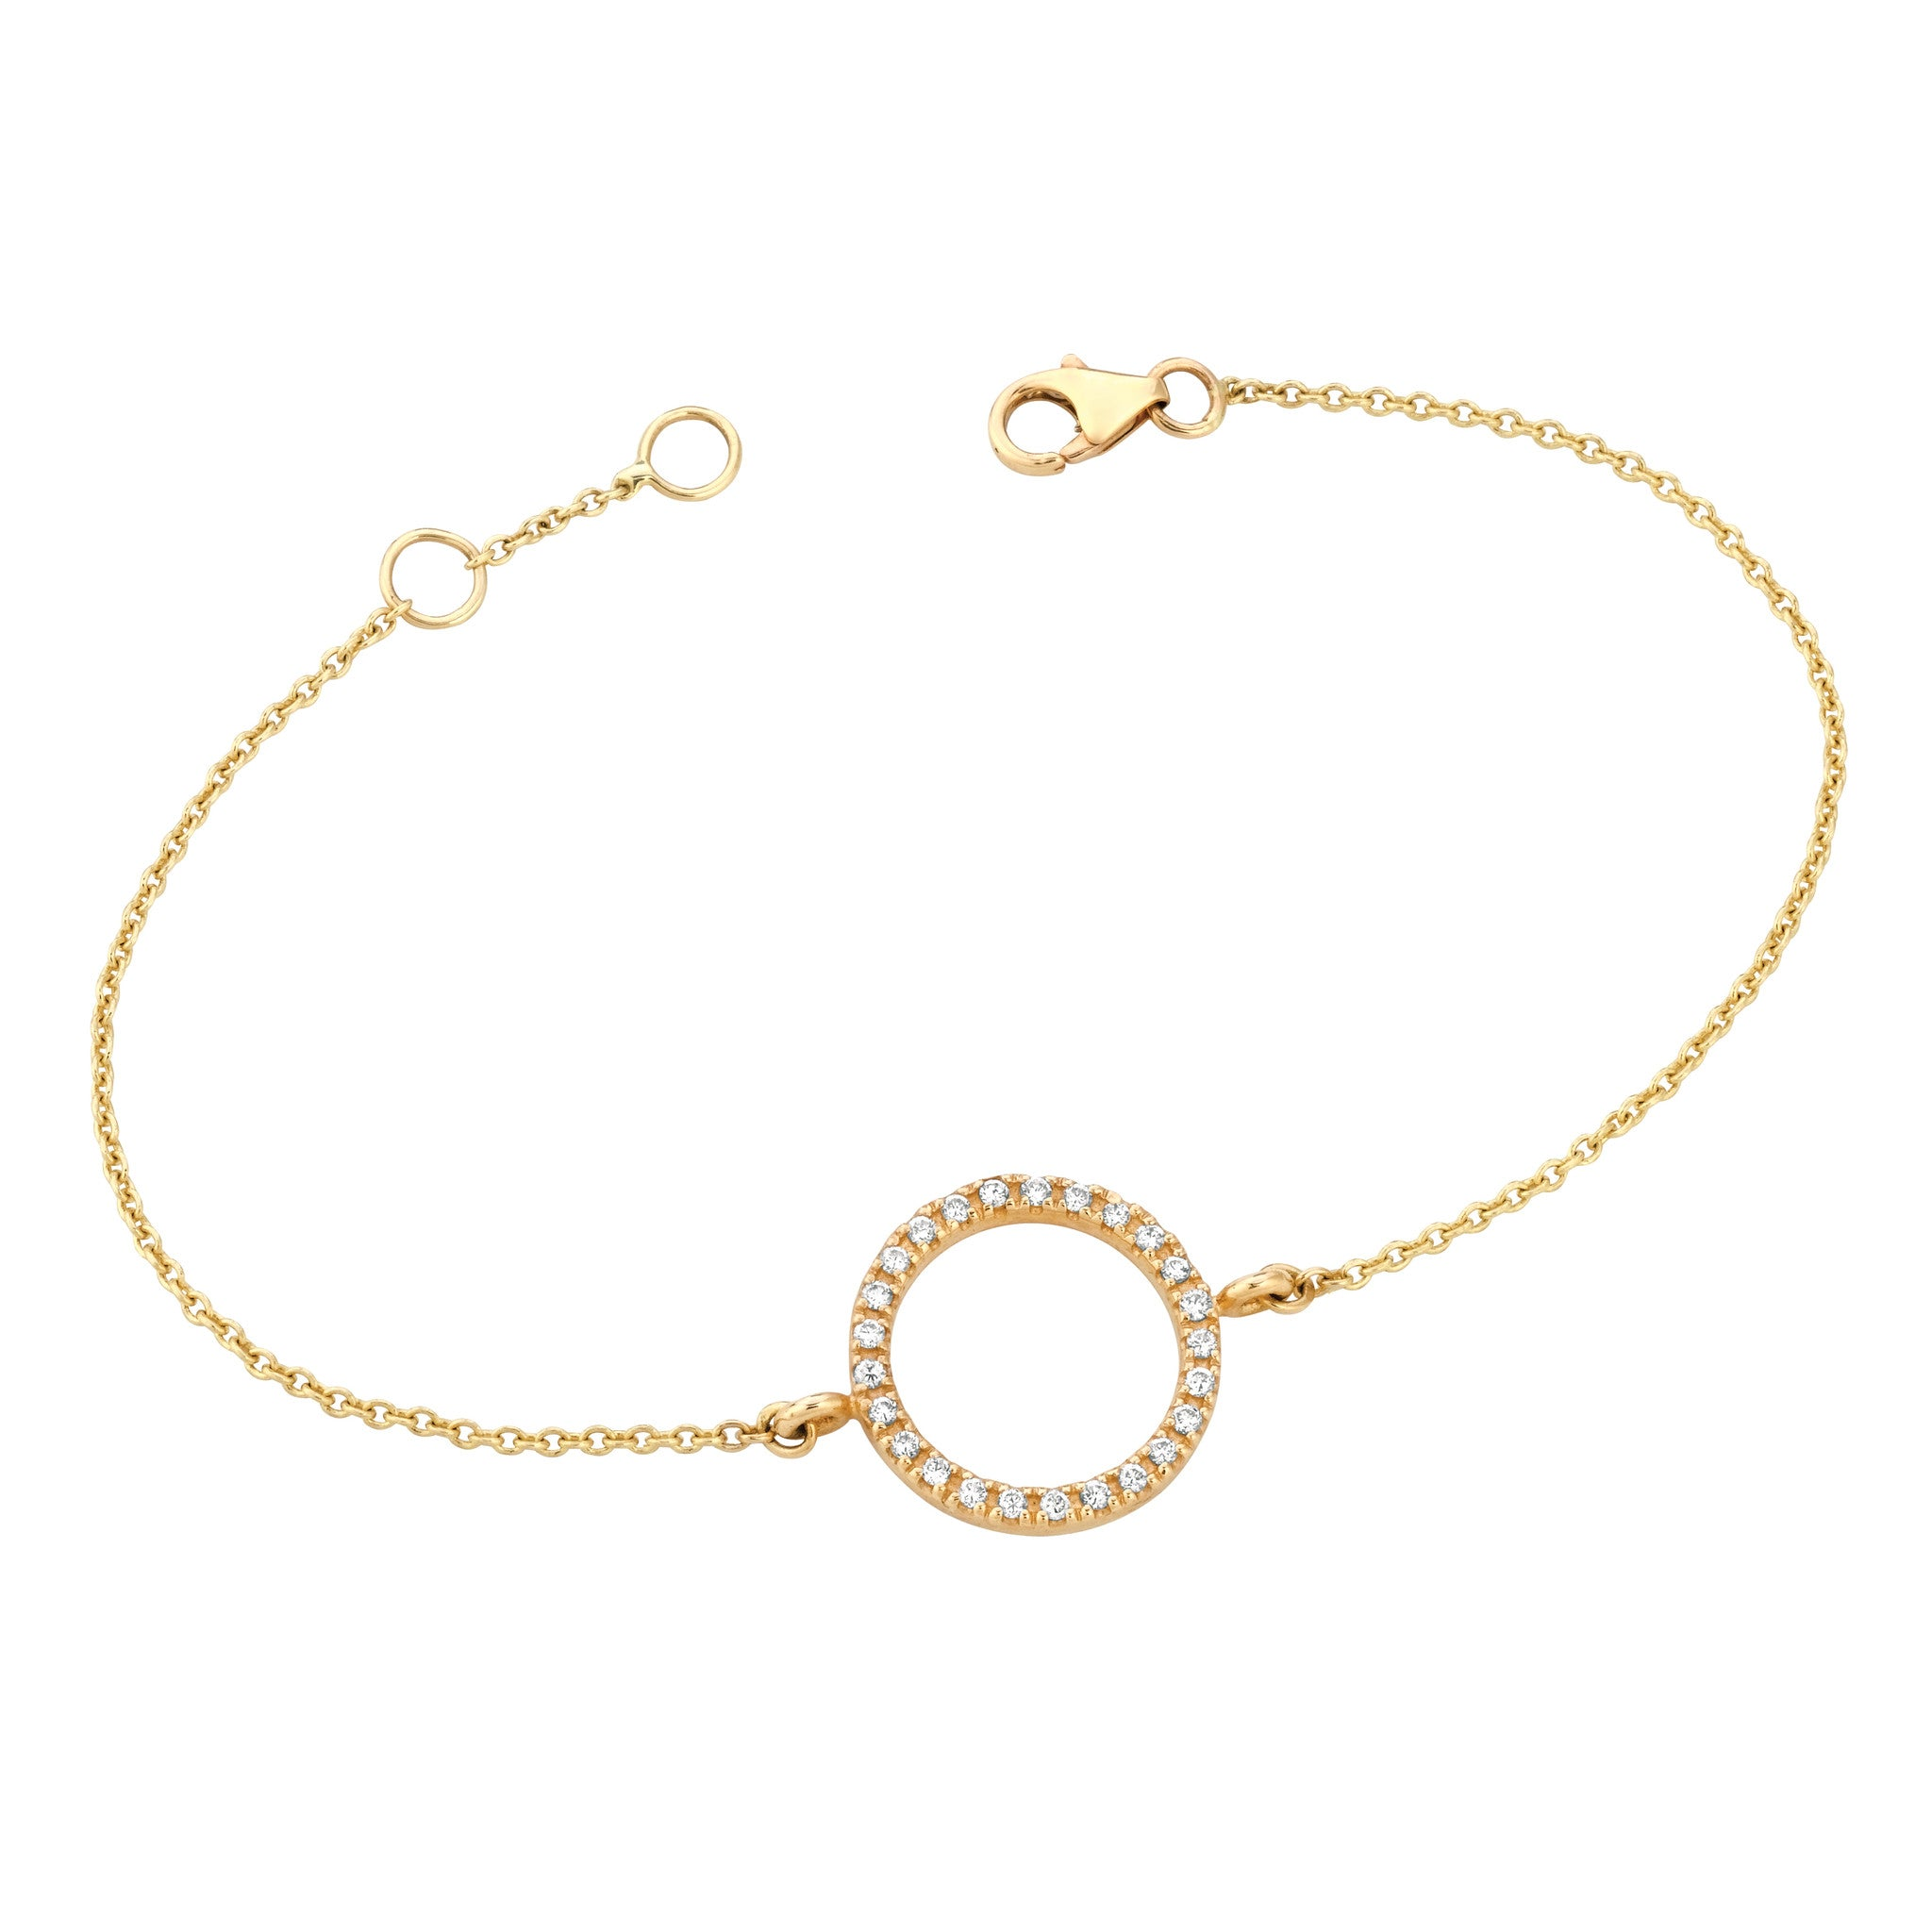 gallery bay circle diamond necklace ctw the of products collections oyster copy jewelry necklaces open